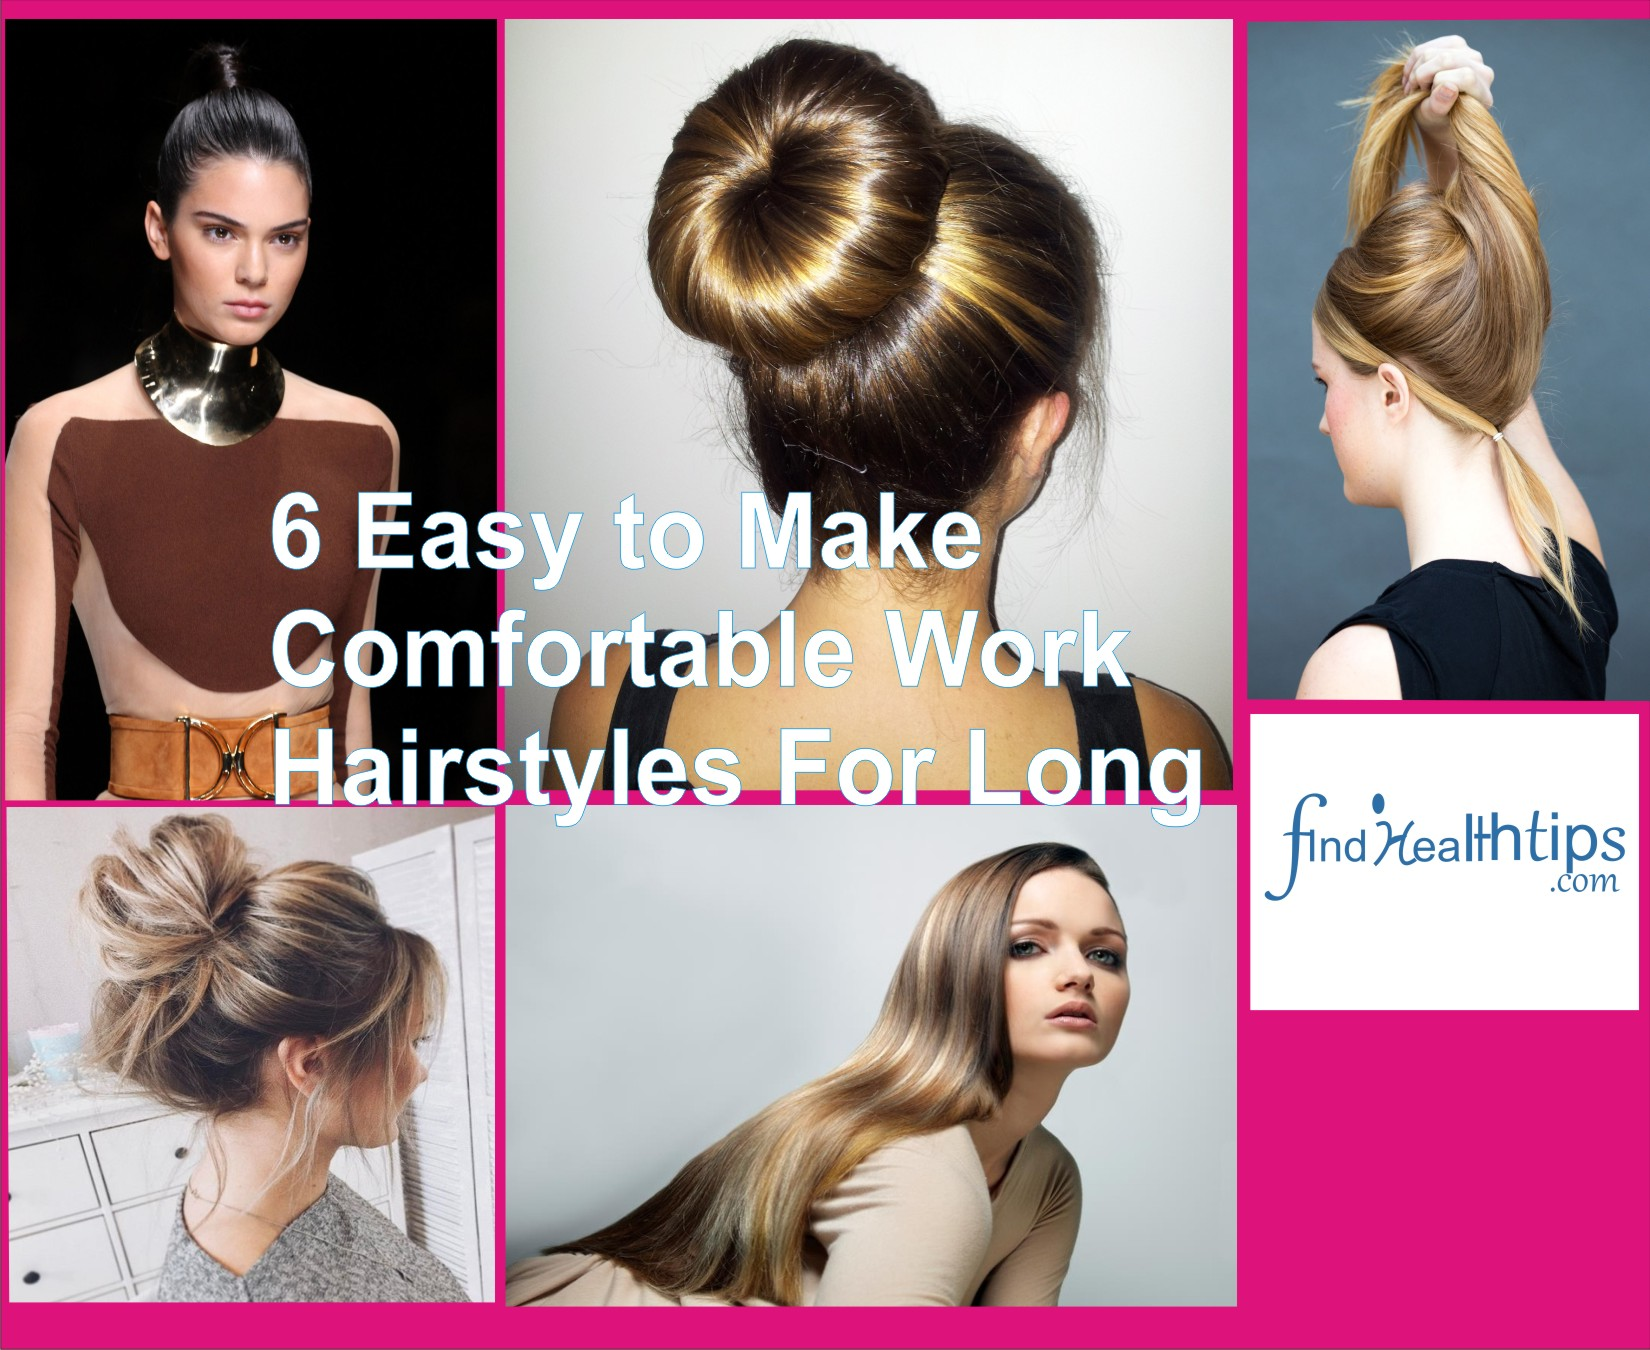 6 Easy to Make Comfortable Work Hairstyles For Long Hair That Rock ...